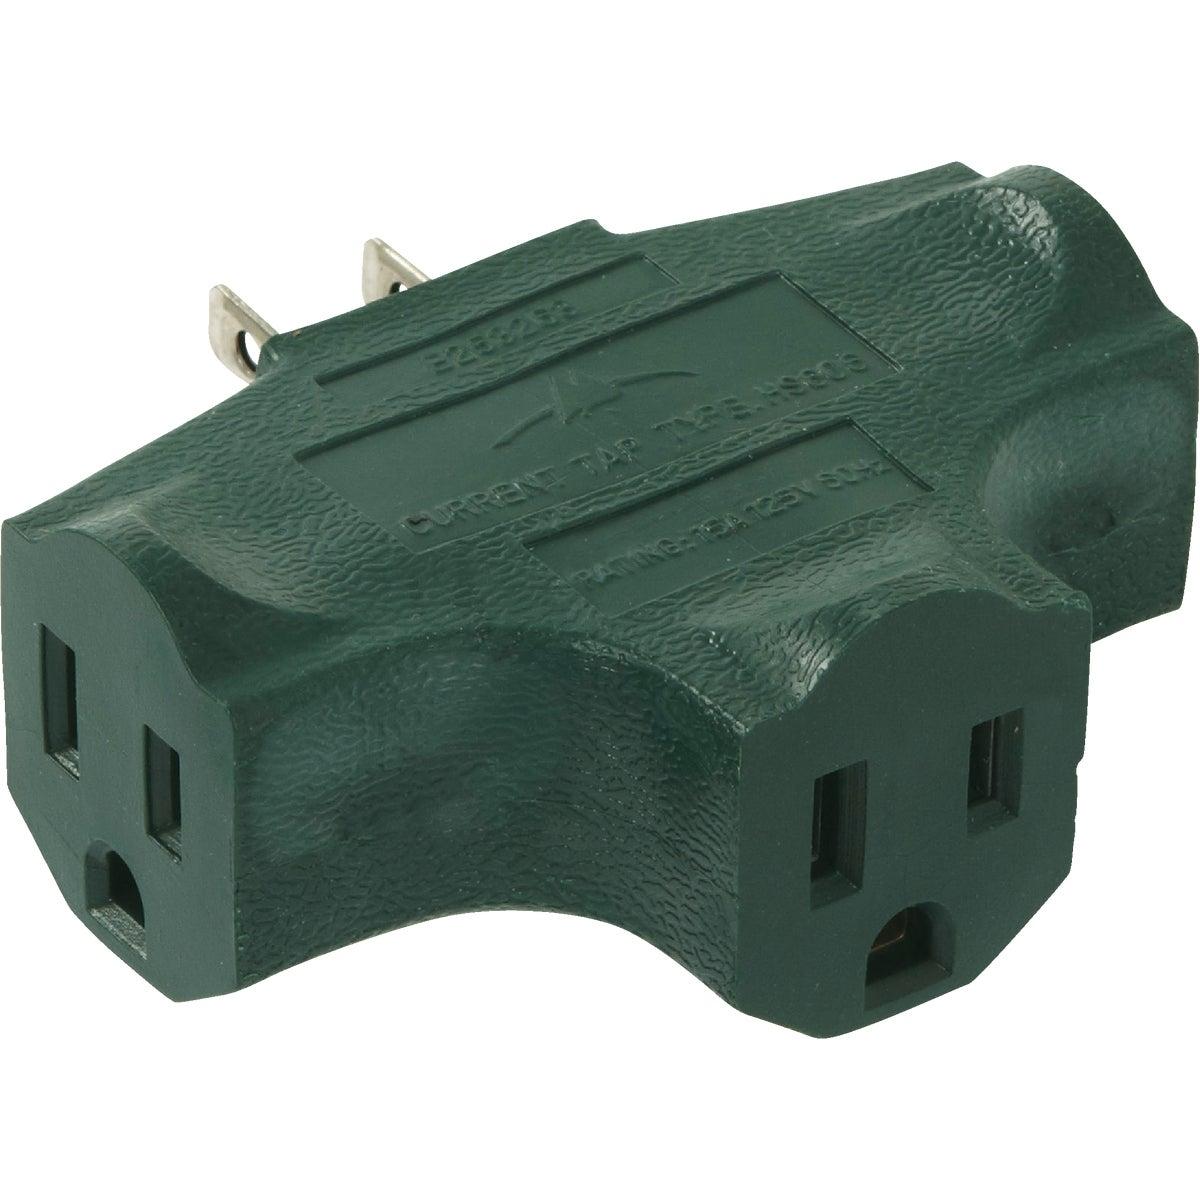 CARDED GREEN CUBE TAP - ADAPTER-GR by Do it Best